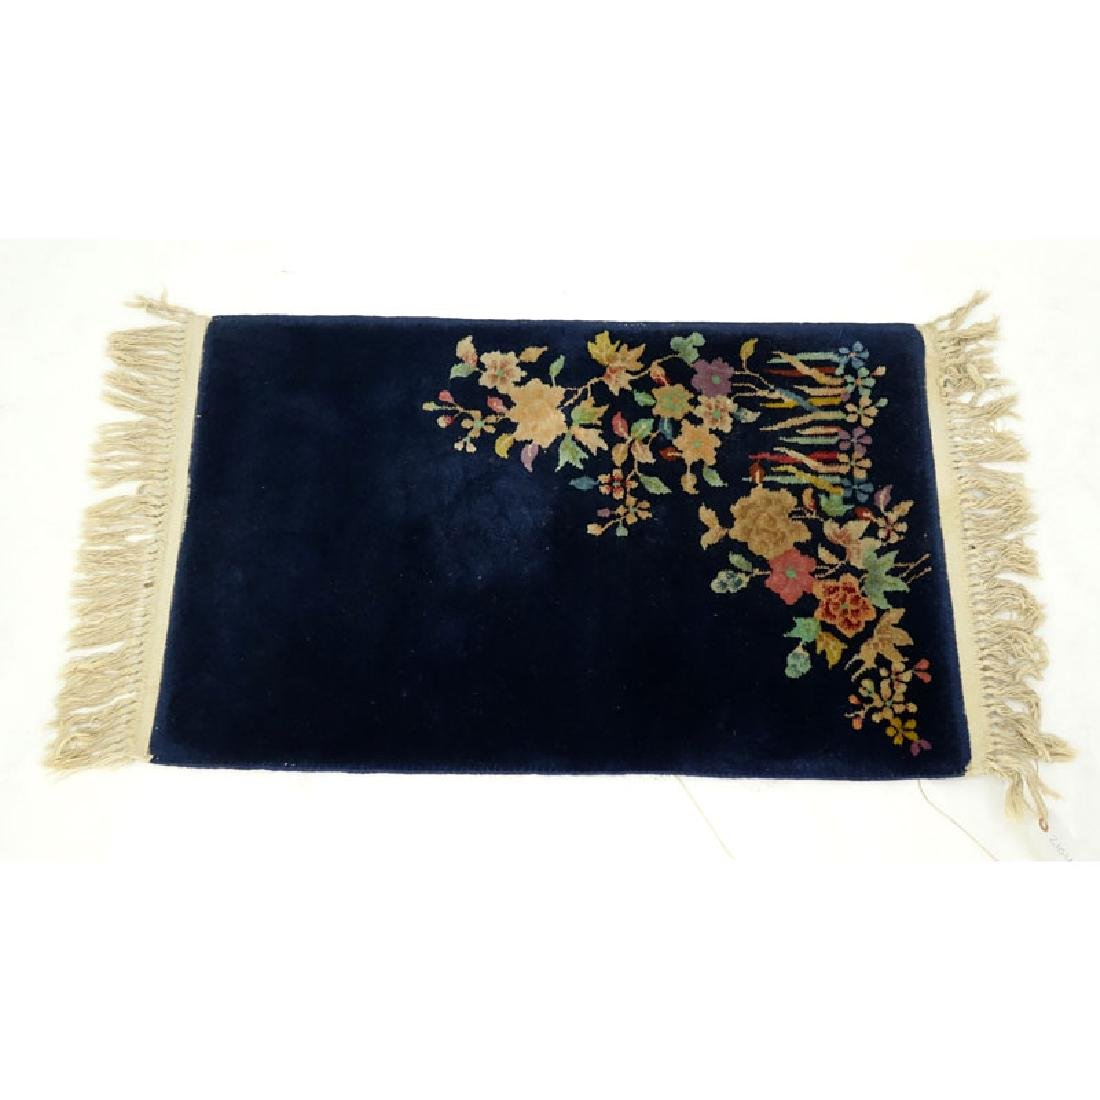 Chinese Nichols Rug, Navy Blue with Flowers. Needs